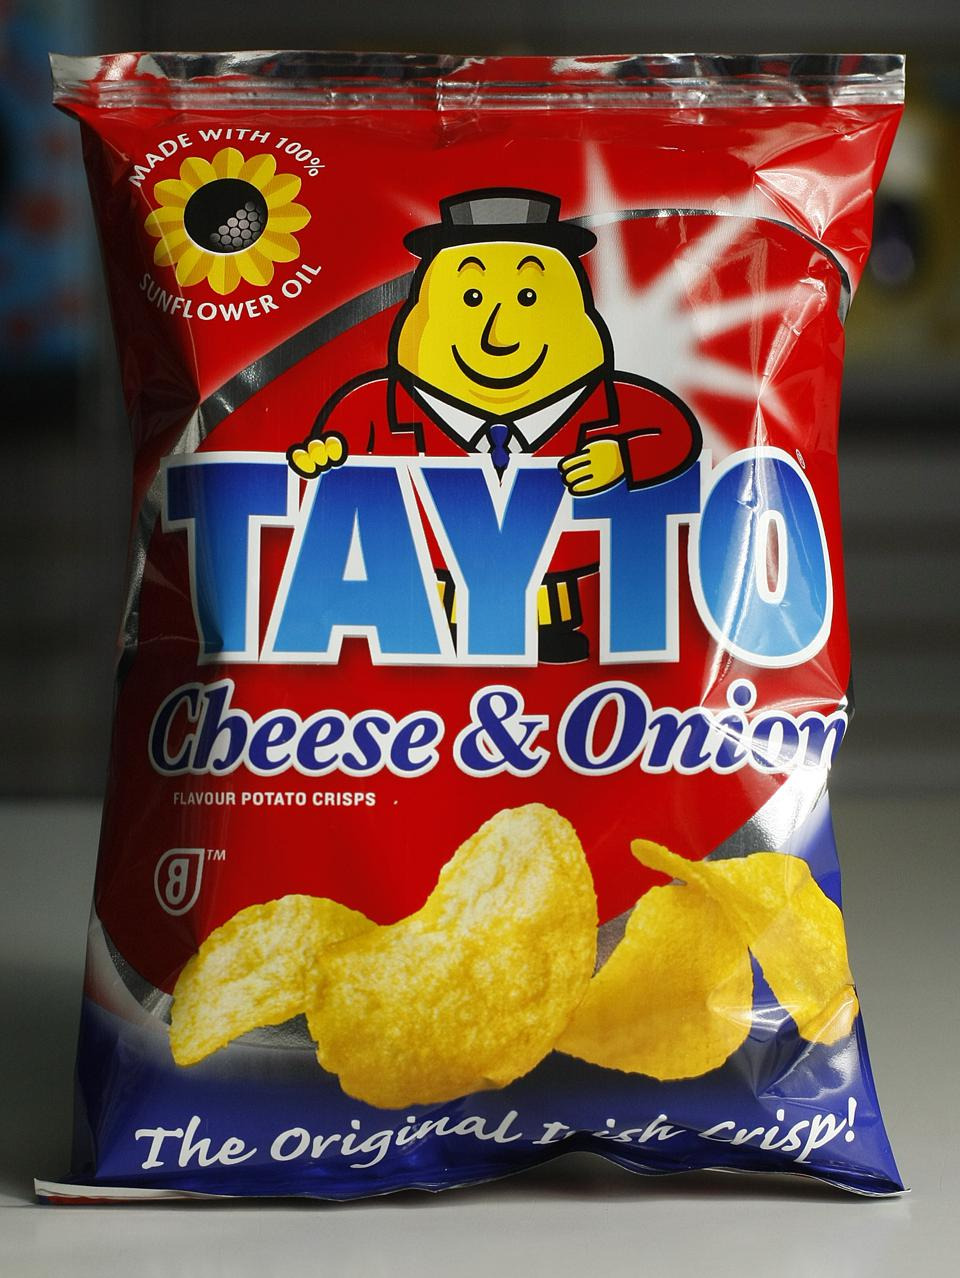 March 7, 2009 -A BIT OF HOME -Tayto cheese and onion flavour potato crisps. Product from Mississauga